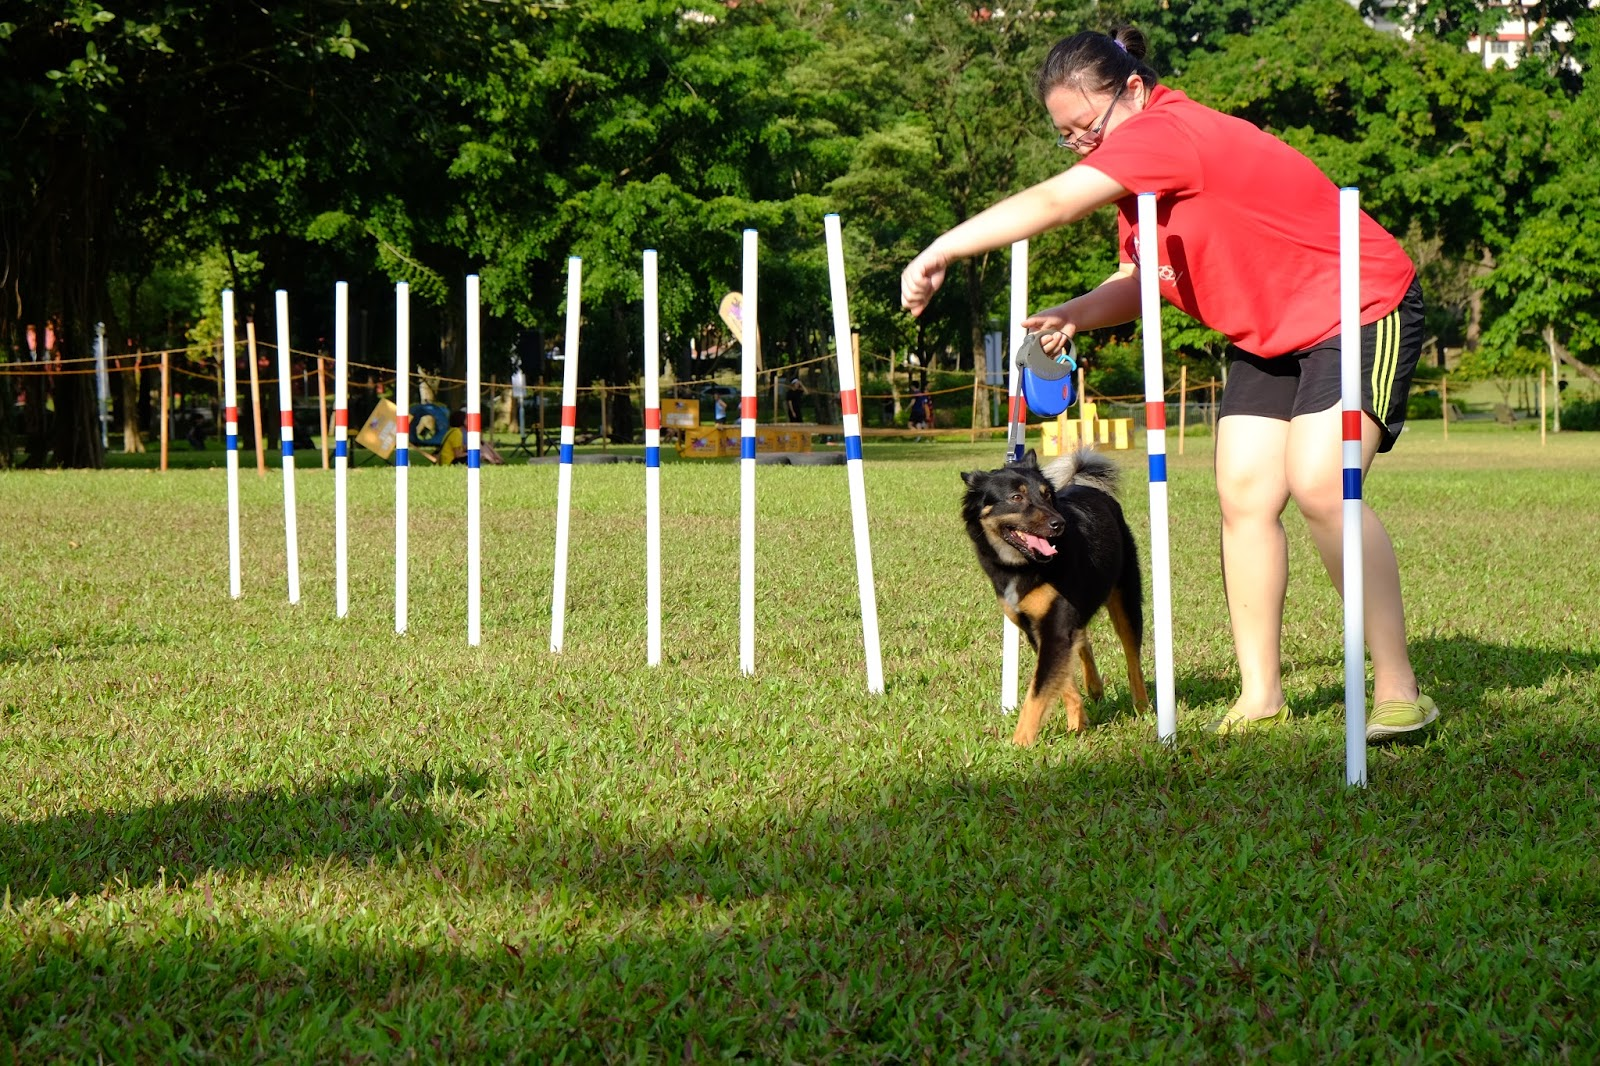 Video Trained Dogs Jumping Through Hoops